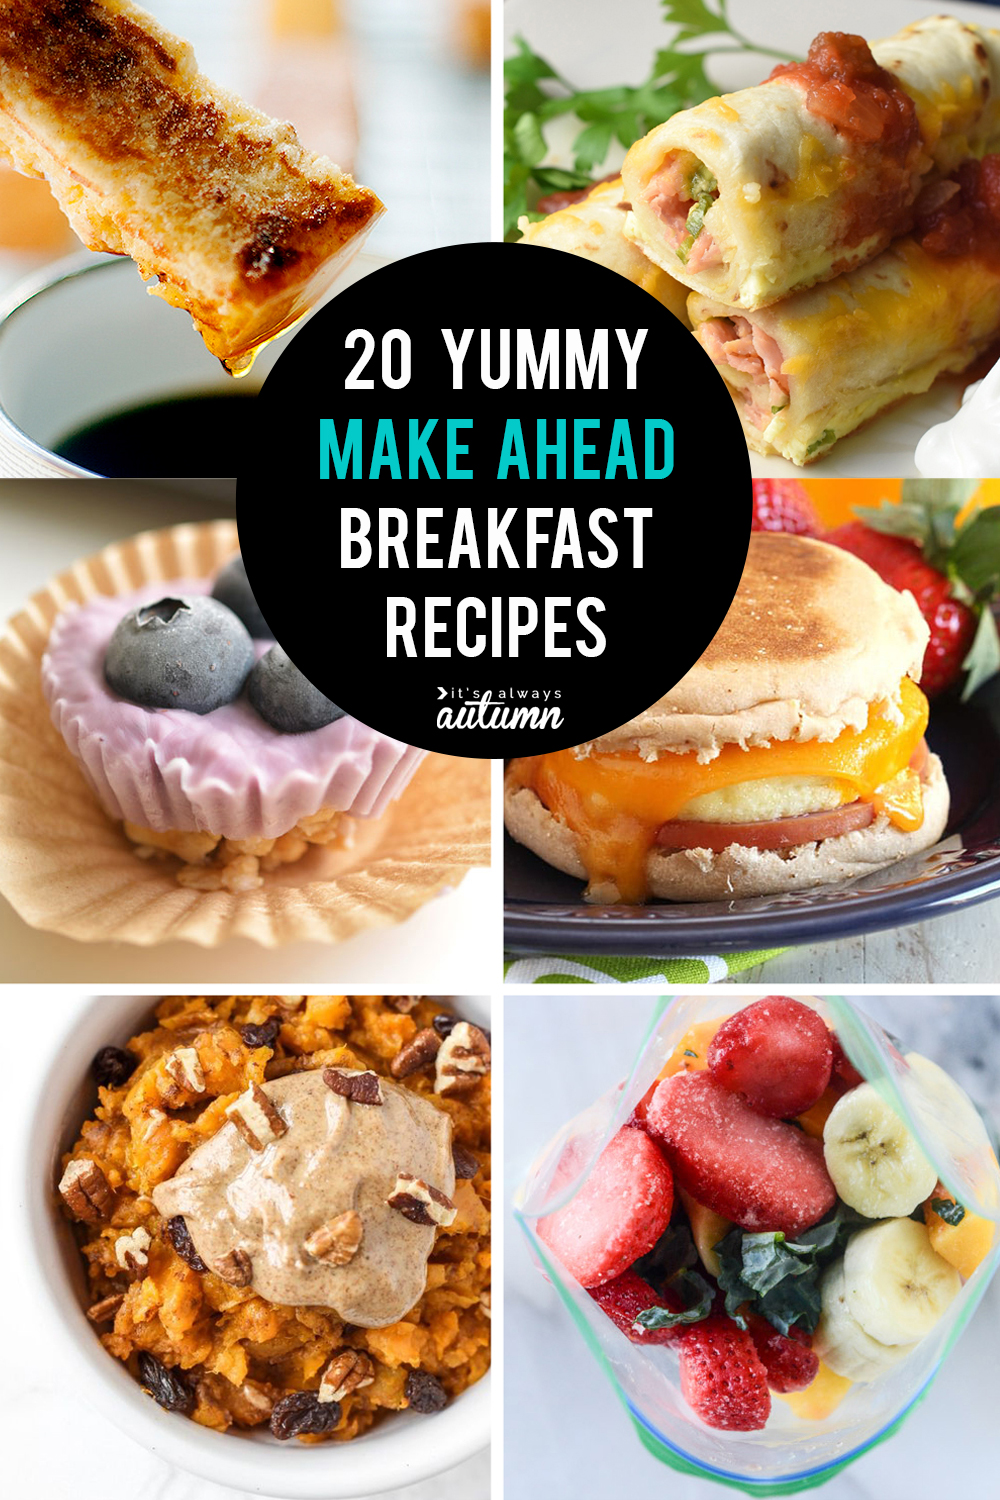 13 Instant Breakfasts for Busy Families recommend